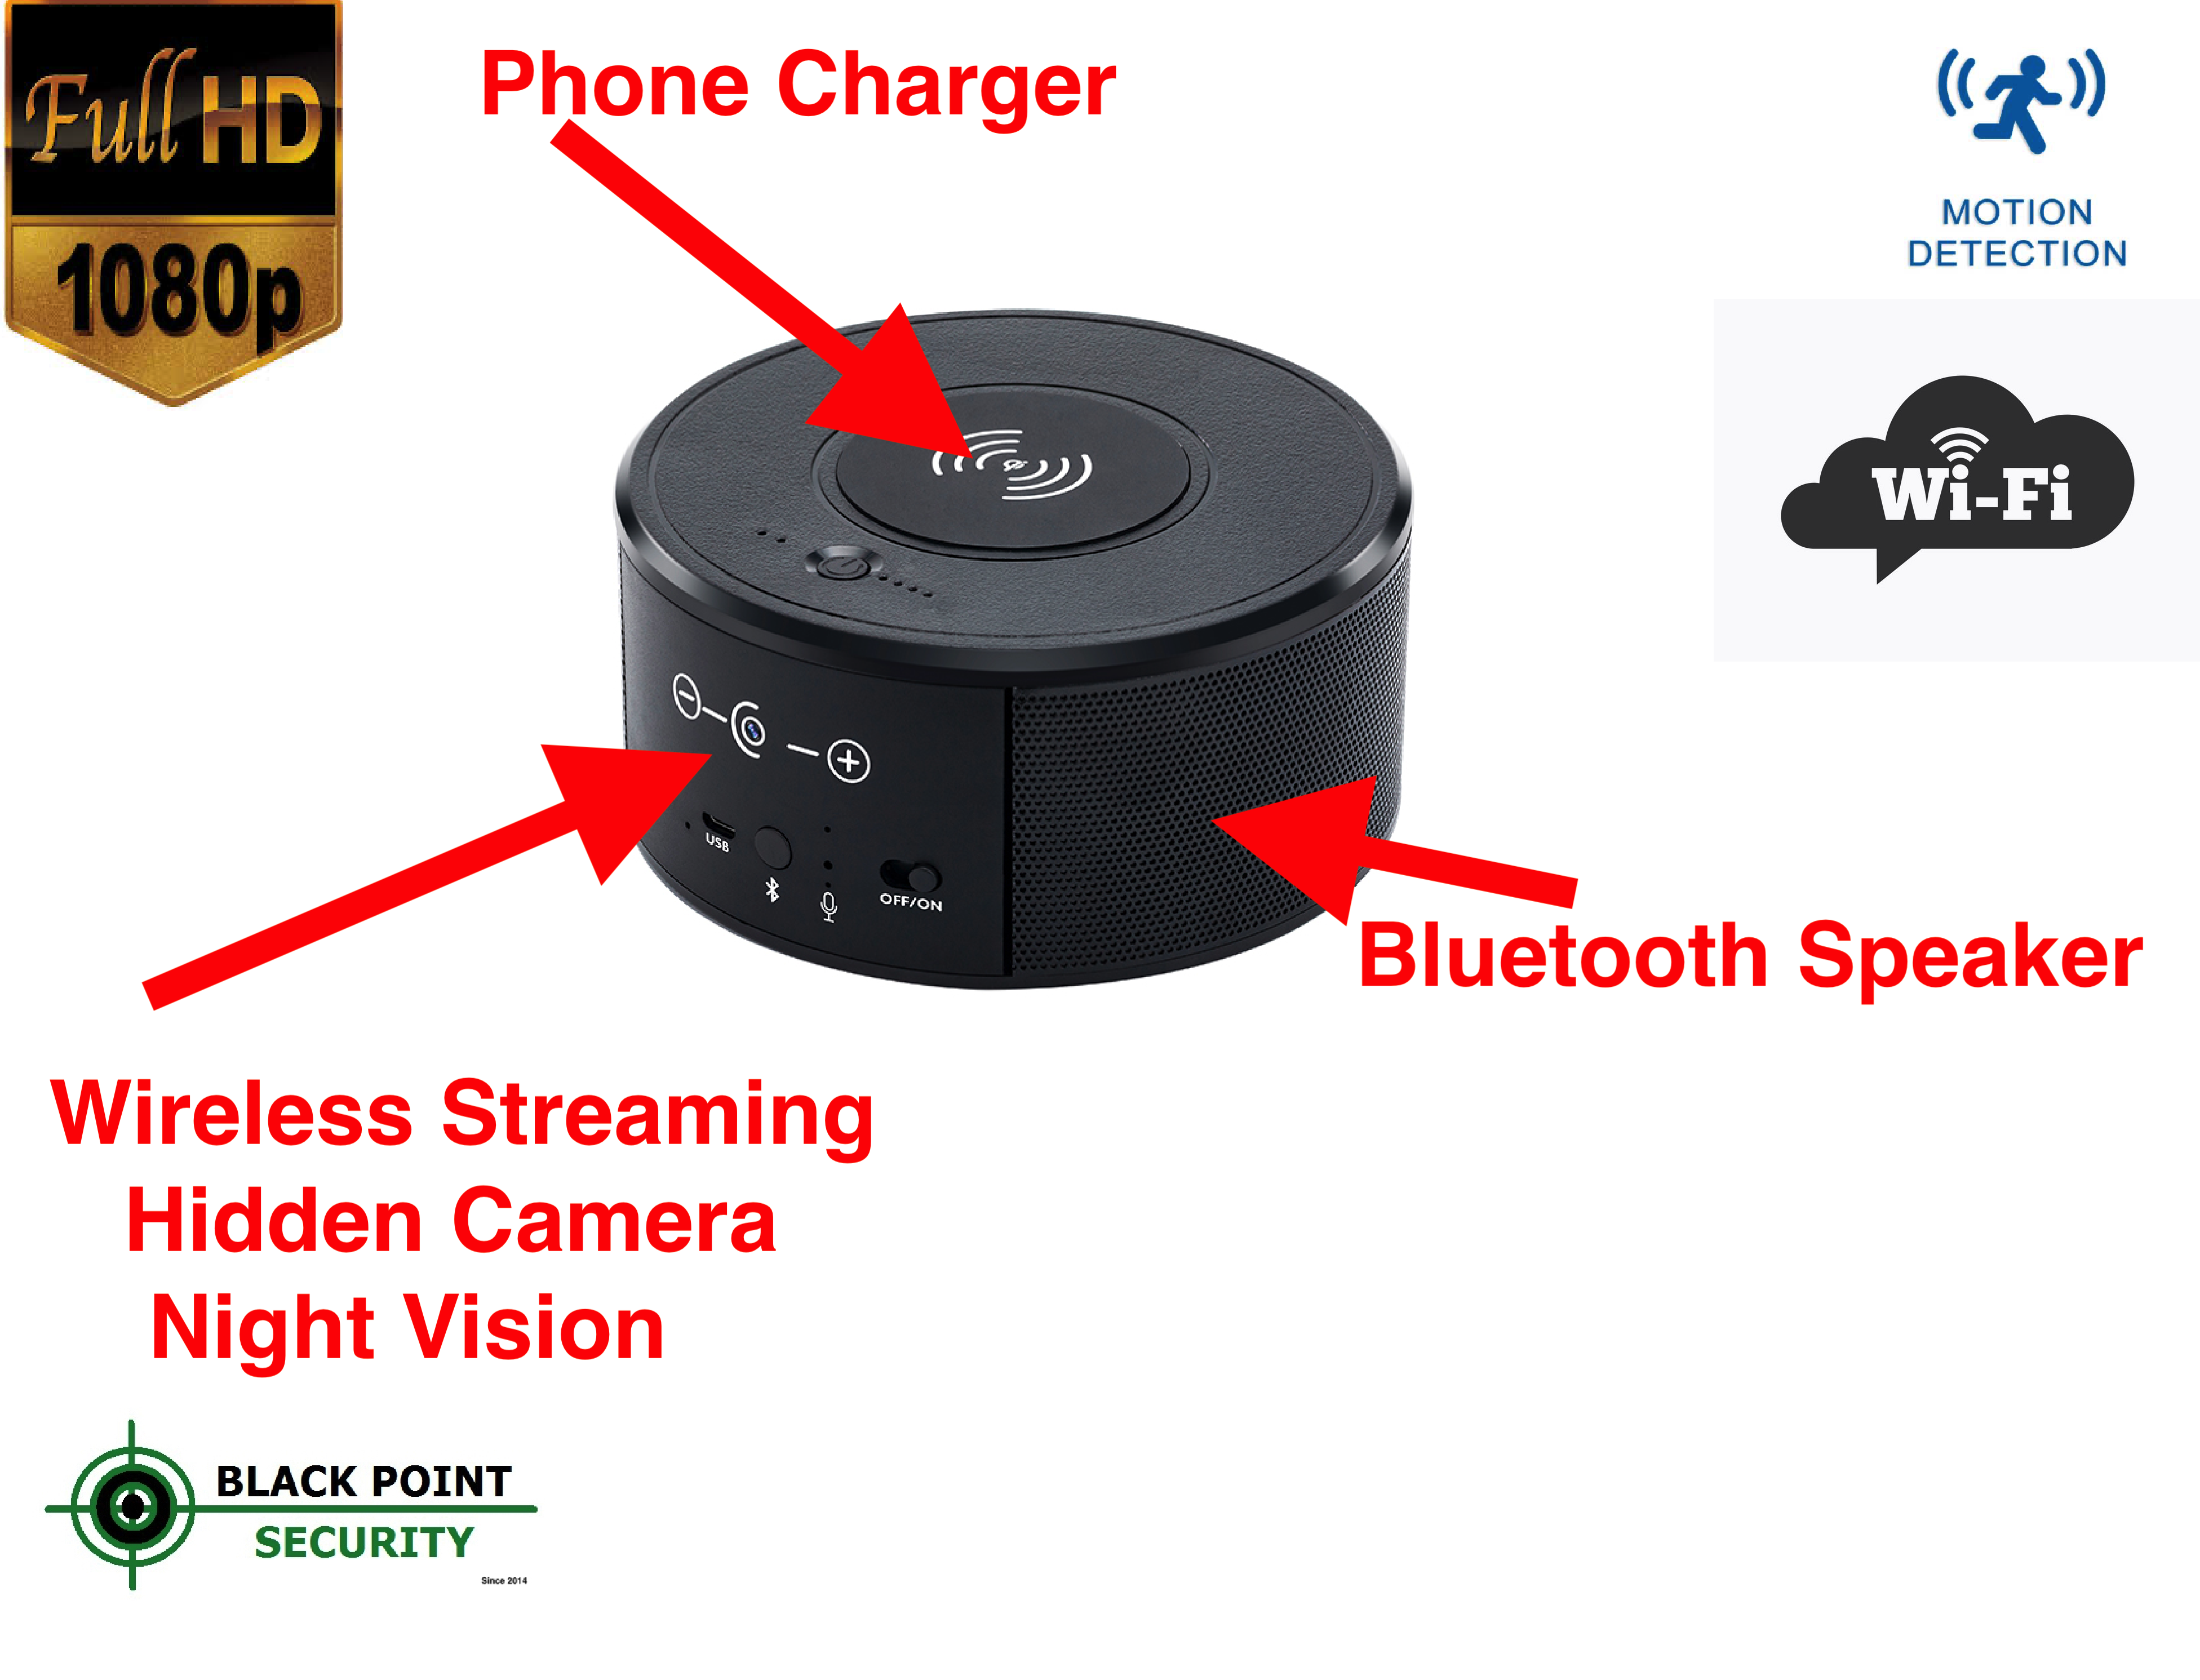 1080p Hd Wifi Wireless Bluetooth Speaker Phone Charger Hidden Camera With Night Vision And Audio